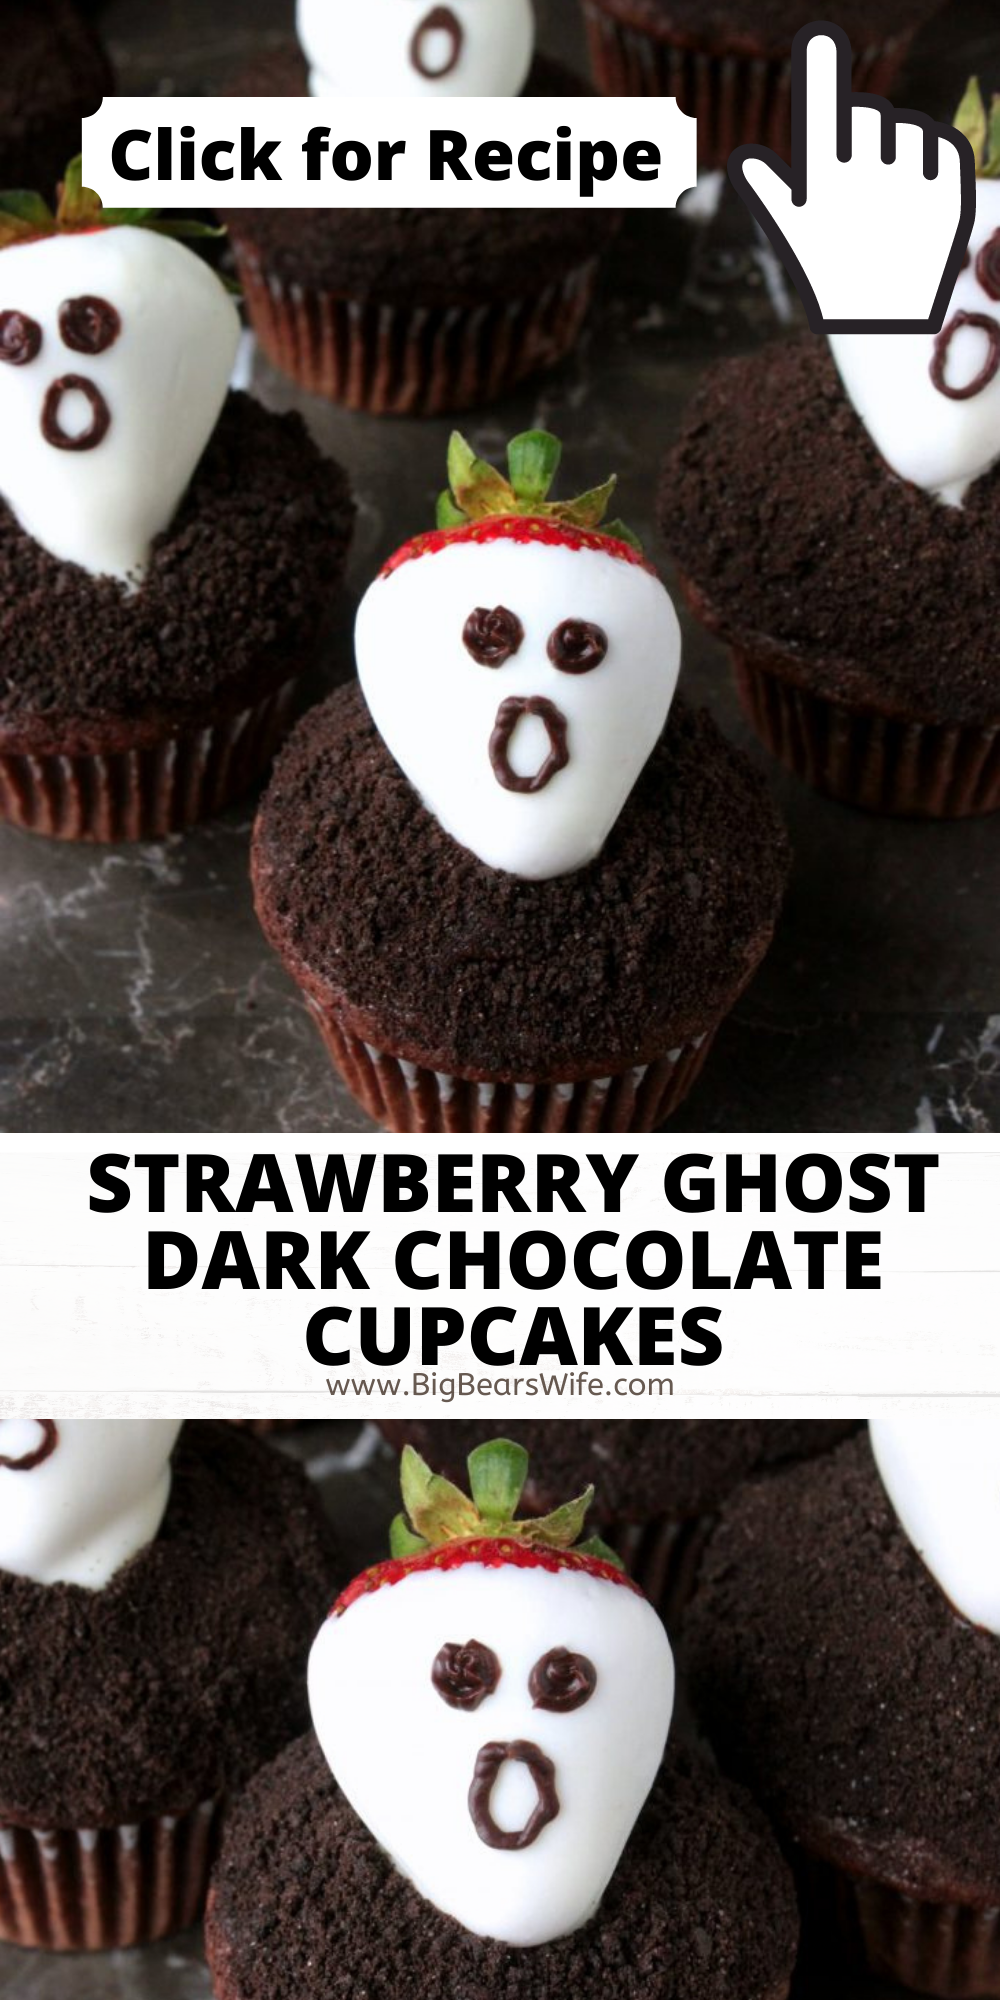 Don't get spooked! These Strawberry Ghost Dark Chocolate Cupcakes are nothing bescaredabout! They're a sweet and easy dessert that's perfect for Halloween! via @bigbearswife